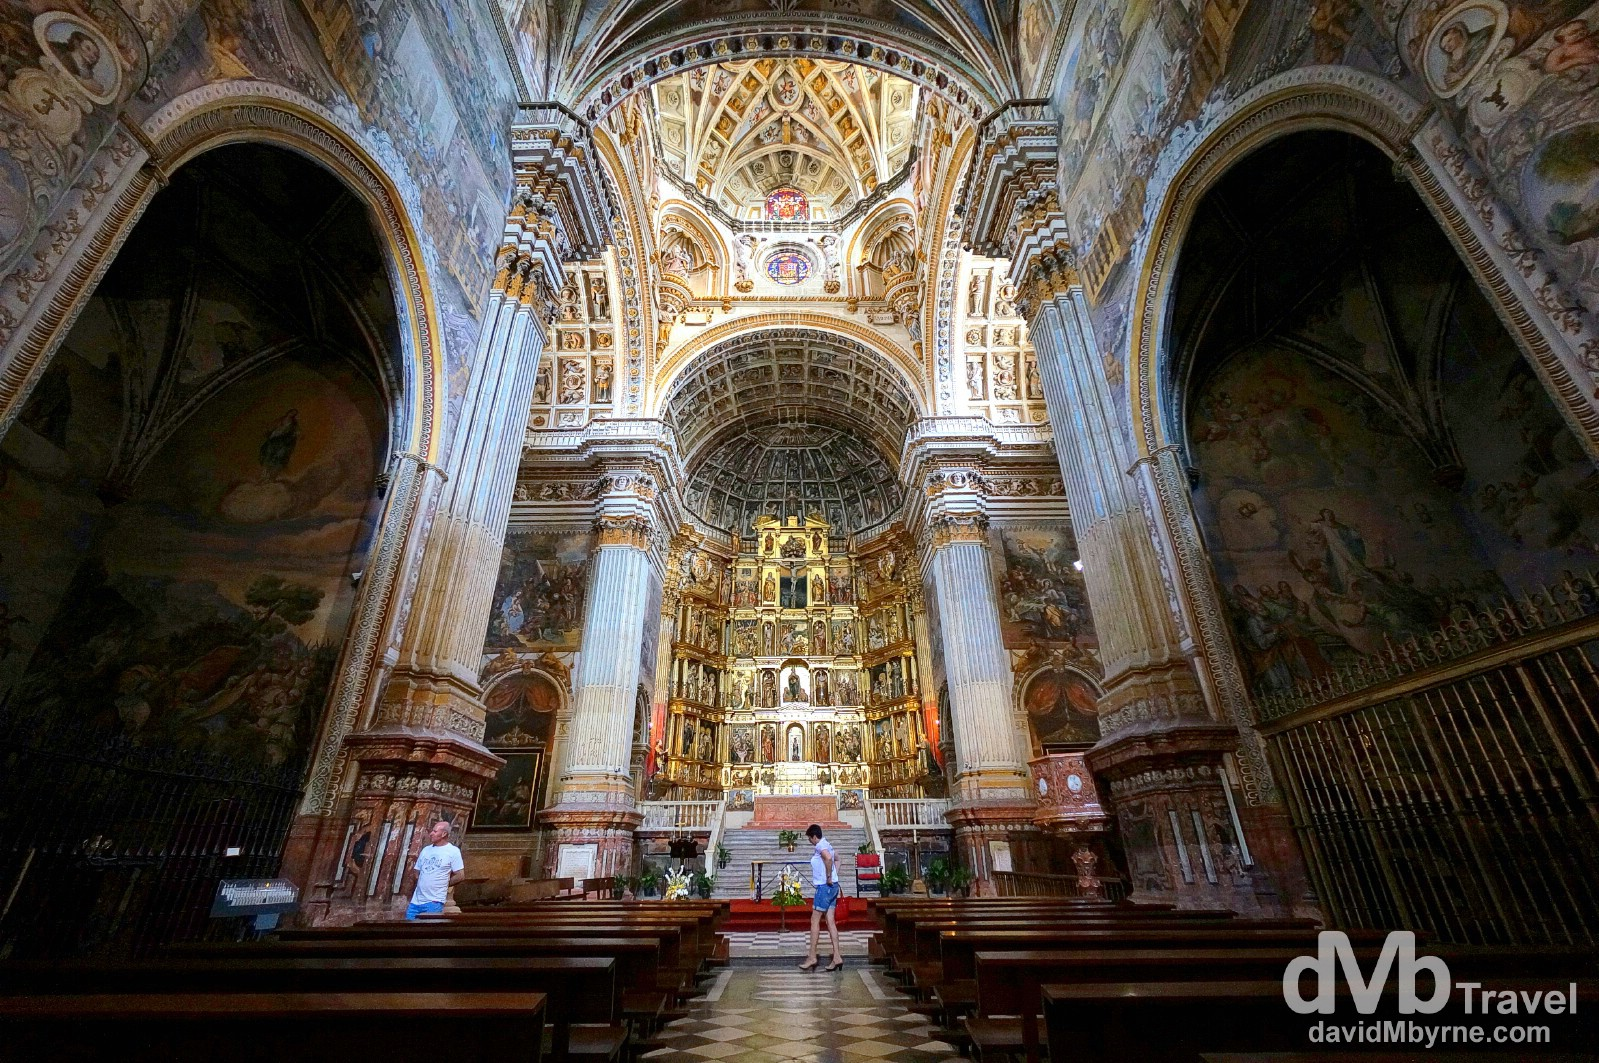 The church of the Monasterio de San Jeronimo in Granada, Andalusia, Spain. June 11th, 2014.